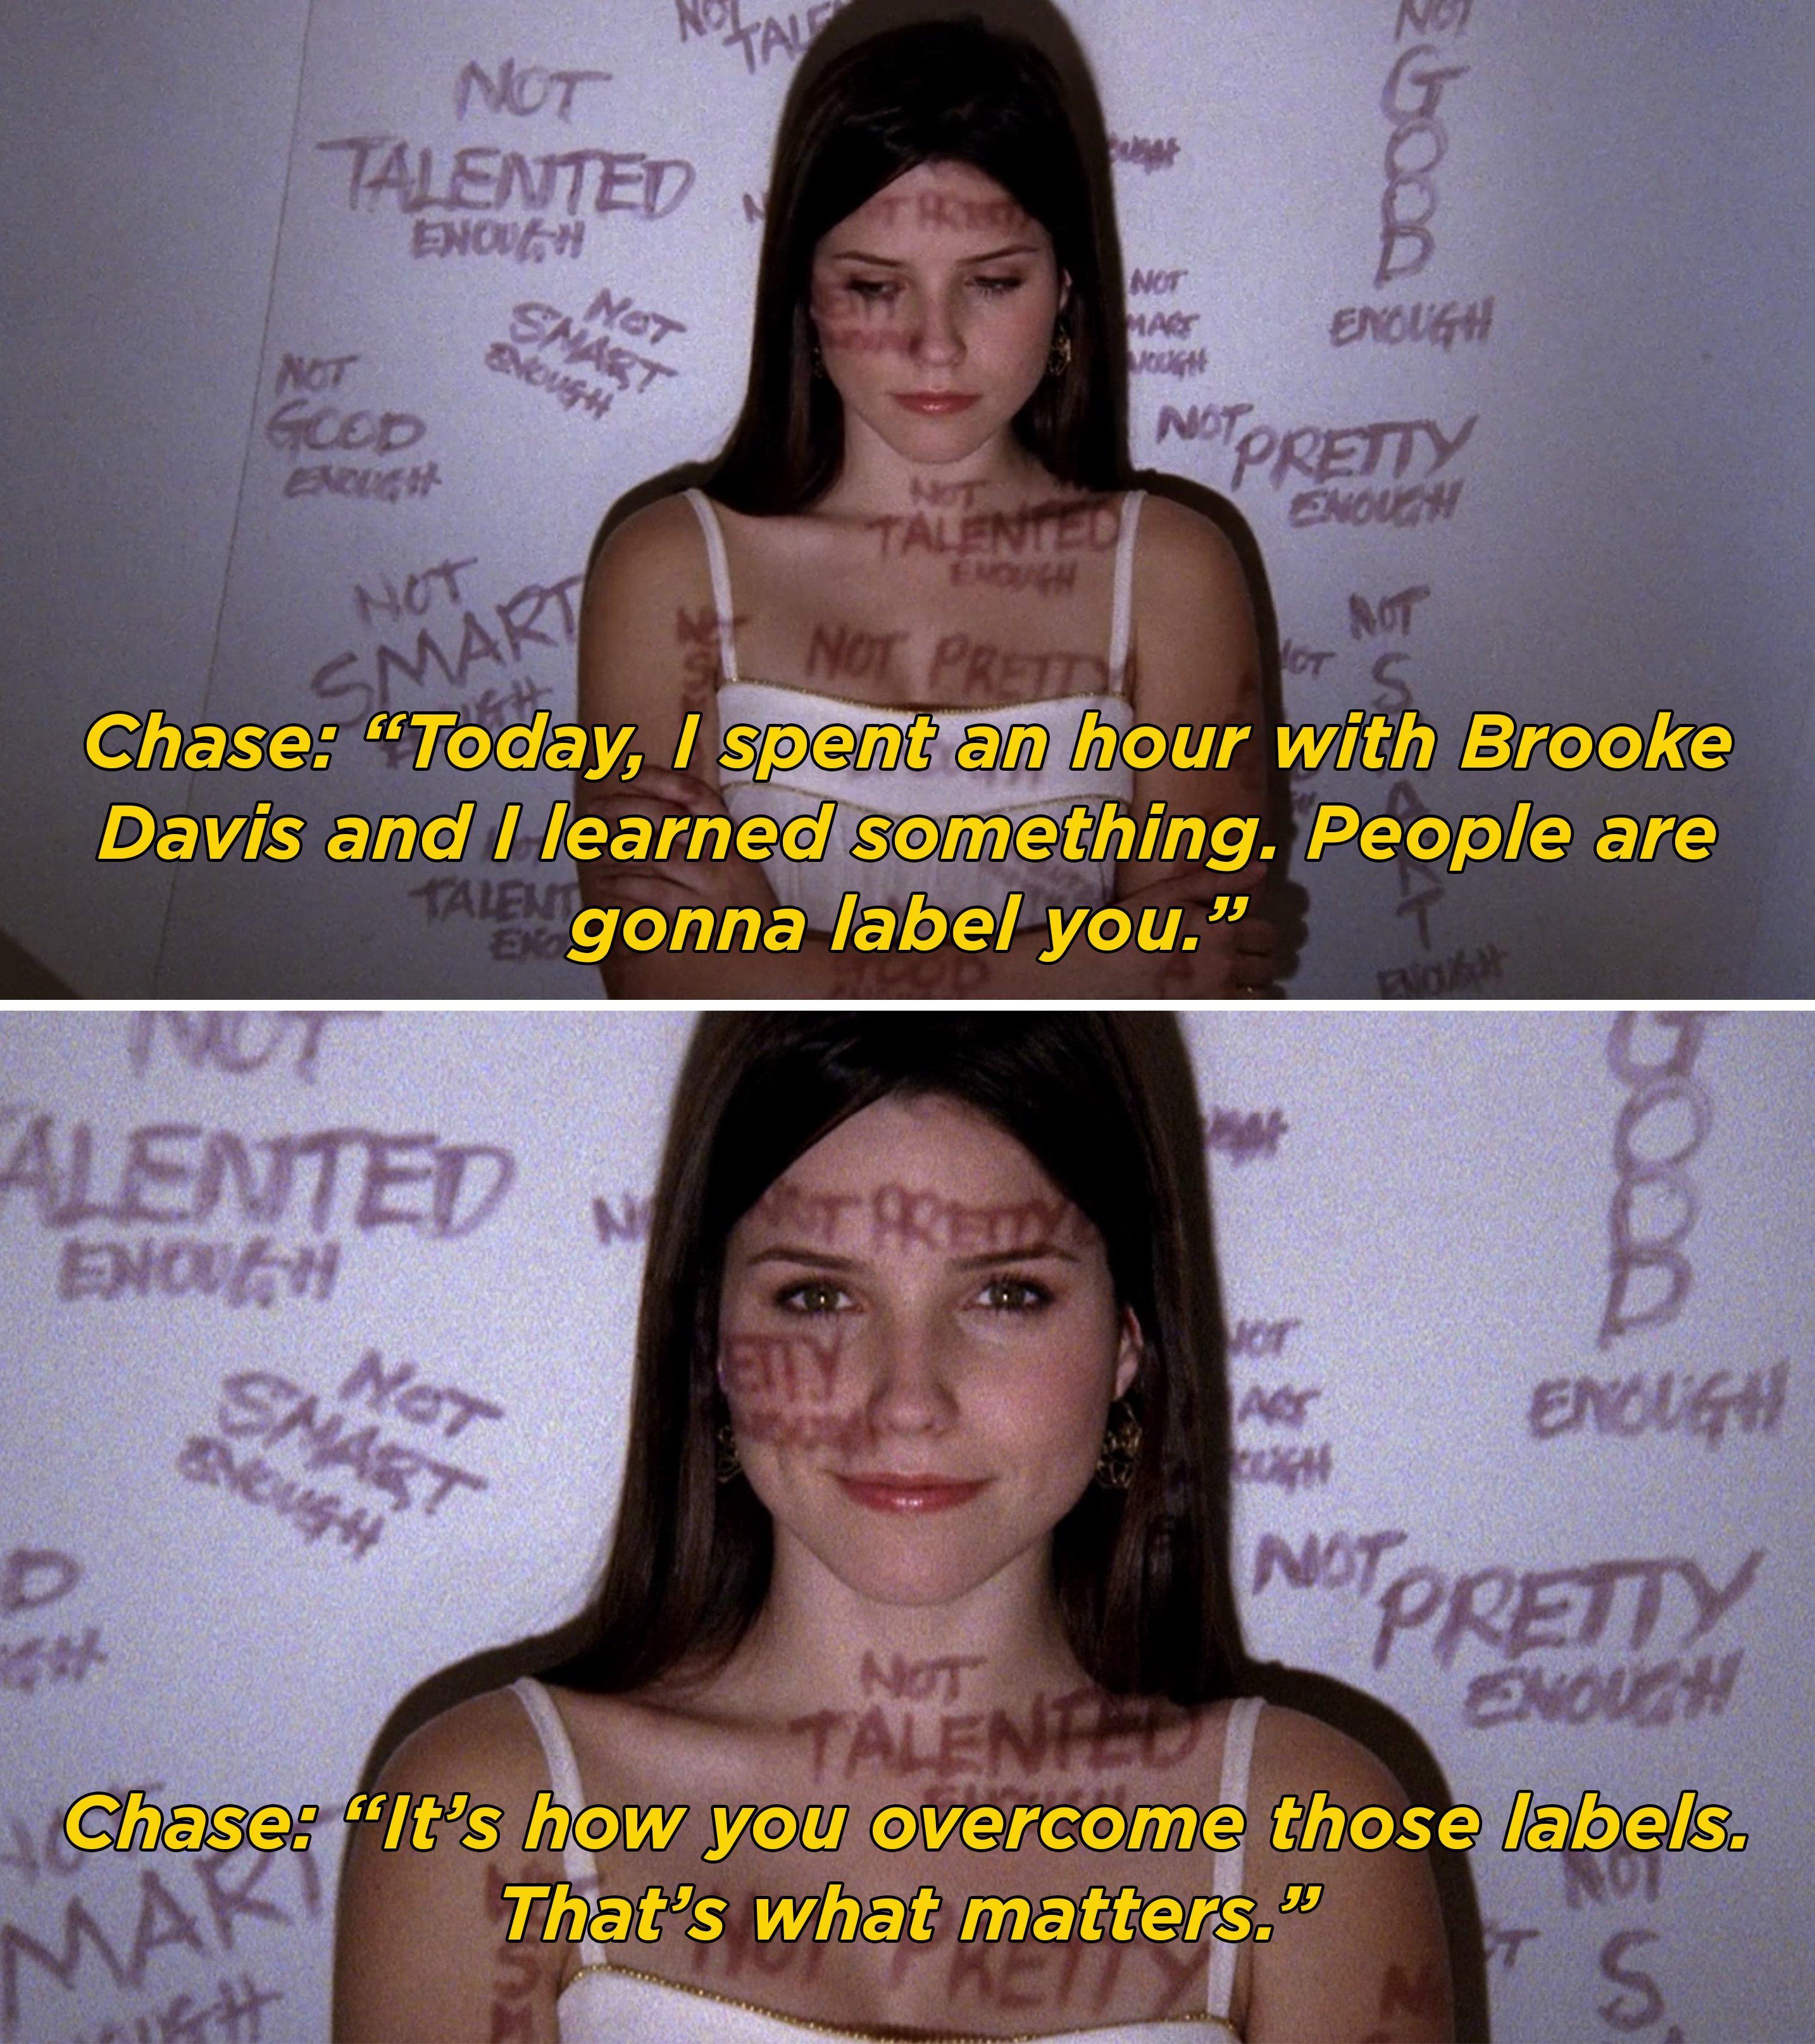 "Brooke standing with words like ""Not pretty enough"" and ""not smart enough"" all over her body. And Chase's voiceover saying, ""It's how you overcome those labels. That's what matters"""